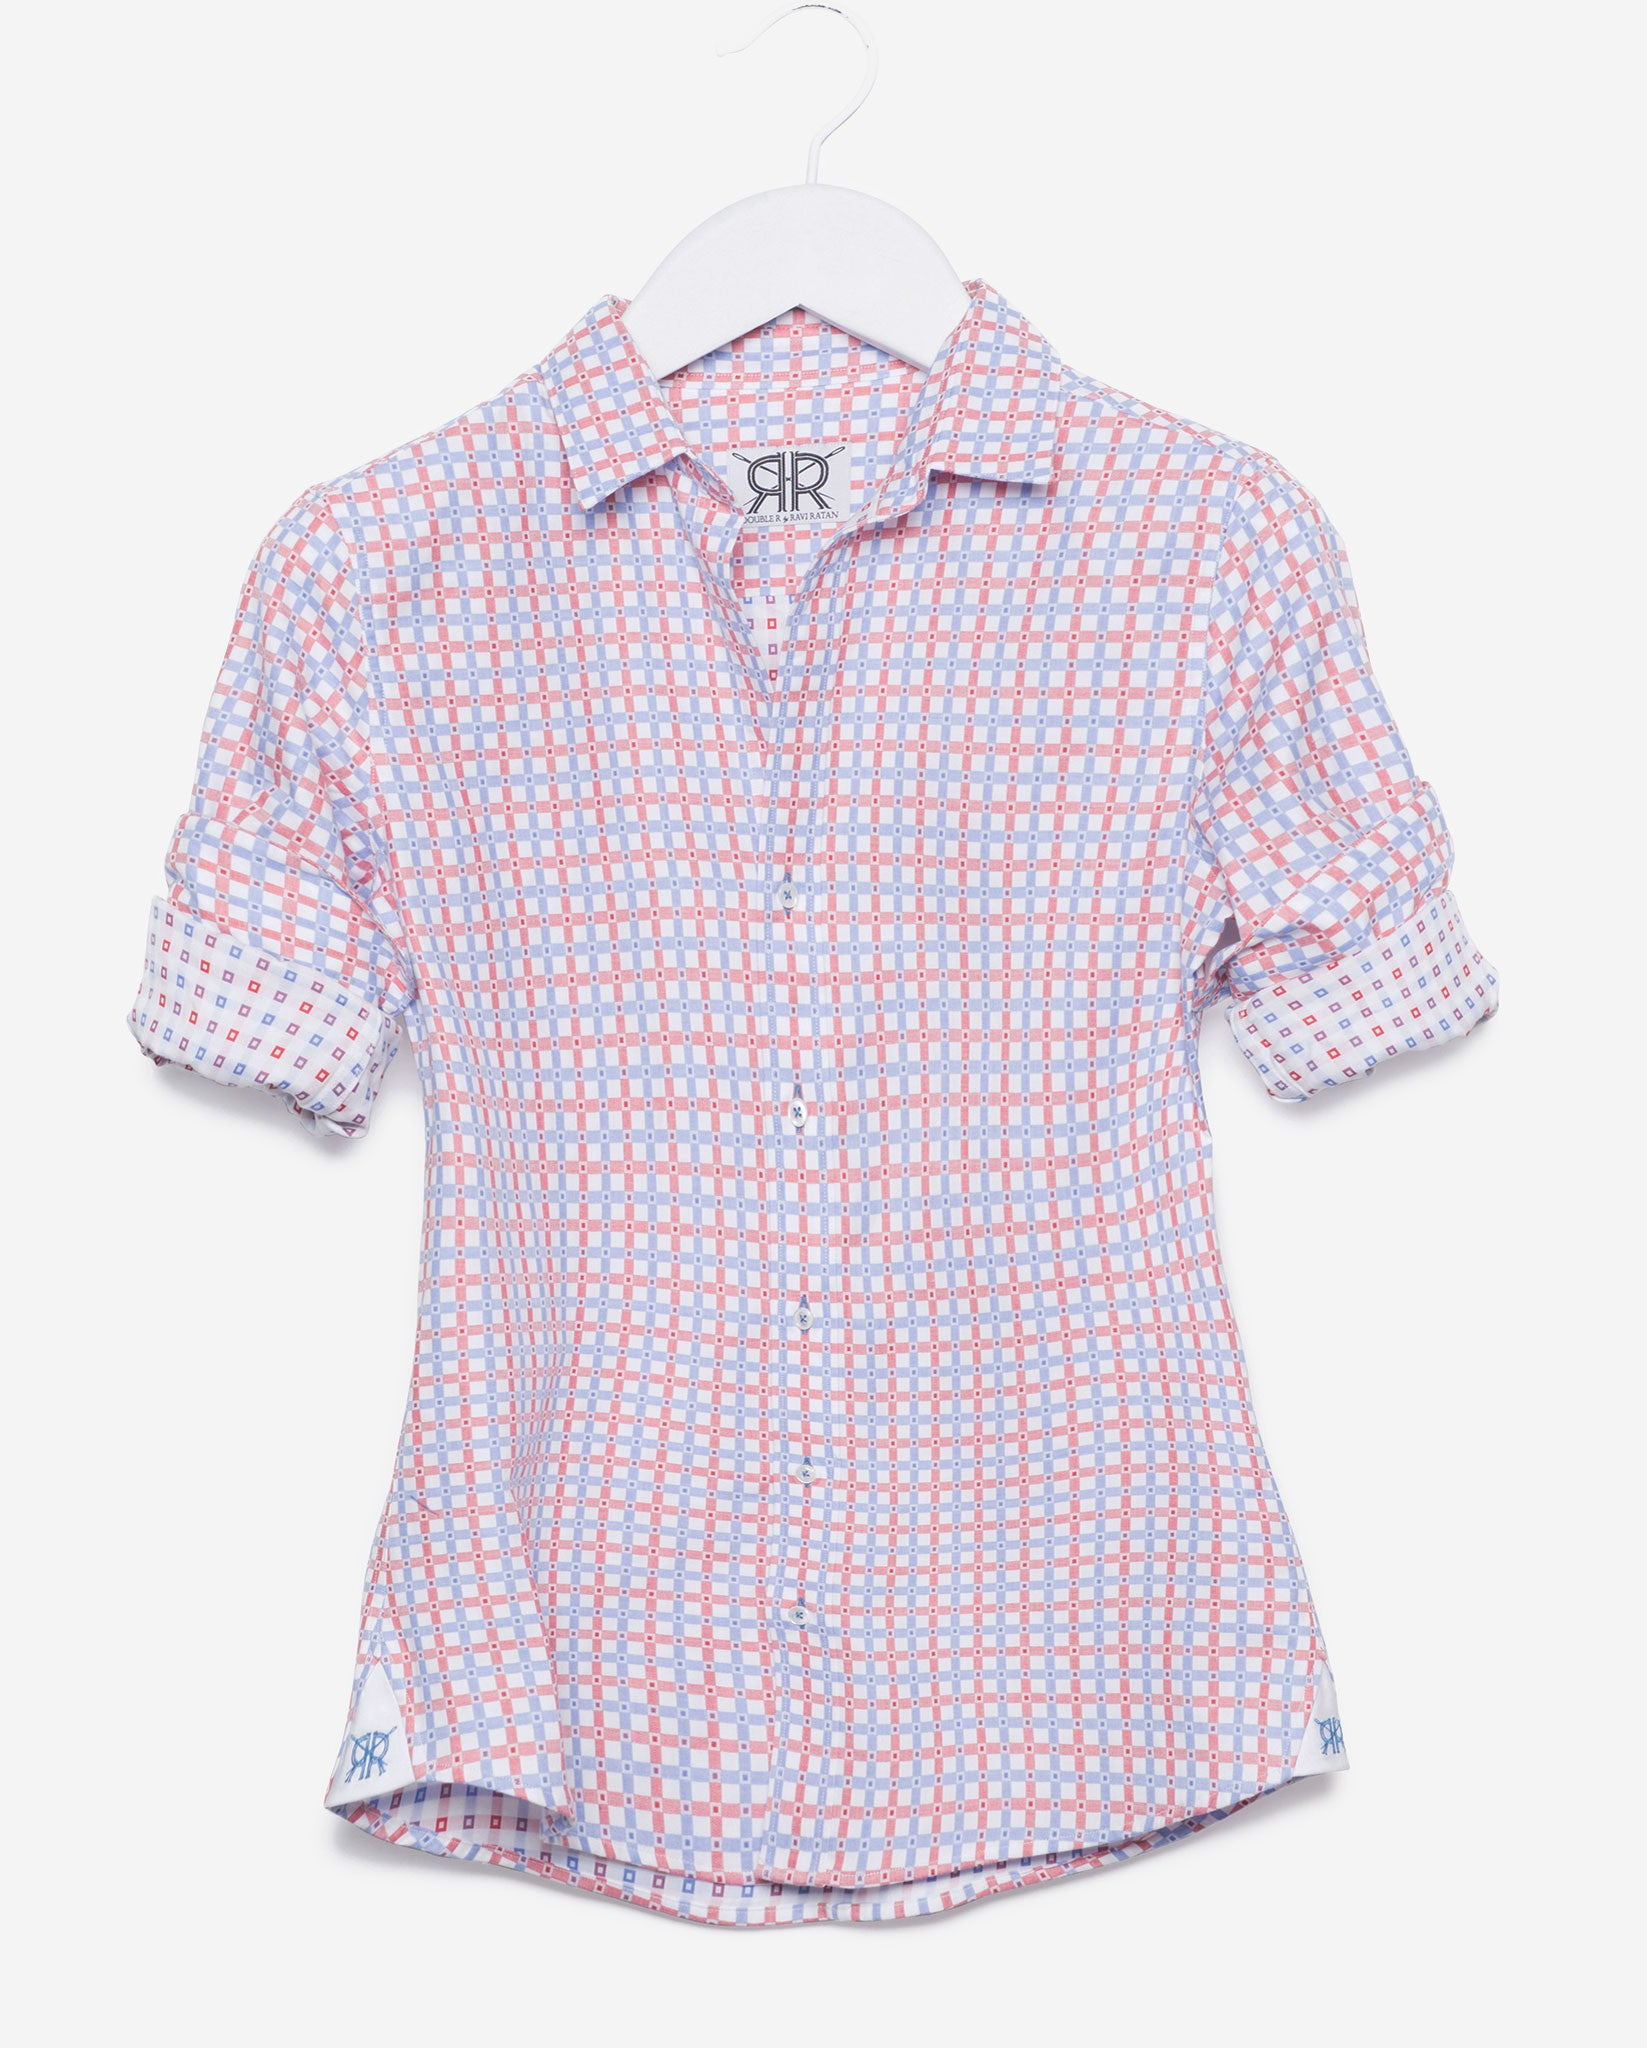 Tailored Shirt - White with Red and Blue Check Women's Button Down ...